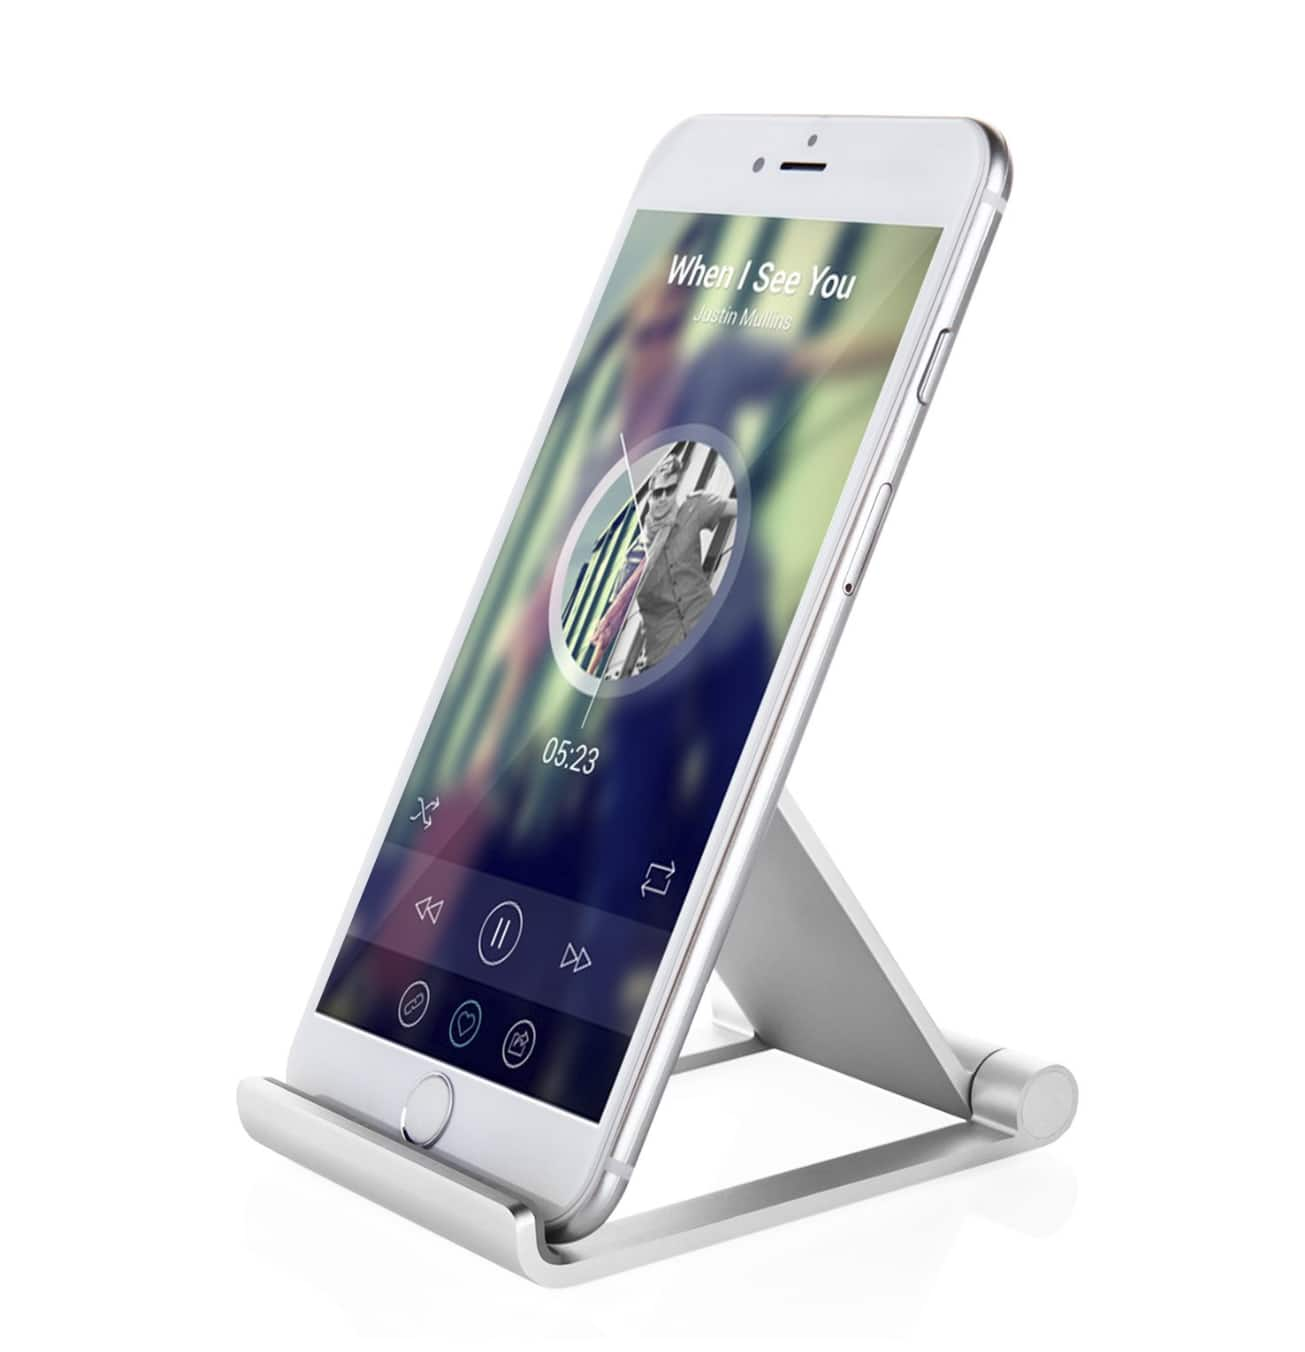 Aluminum Multi-angle Folding Cell Phone Stand, Tablets Stand $5.84